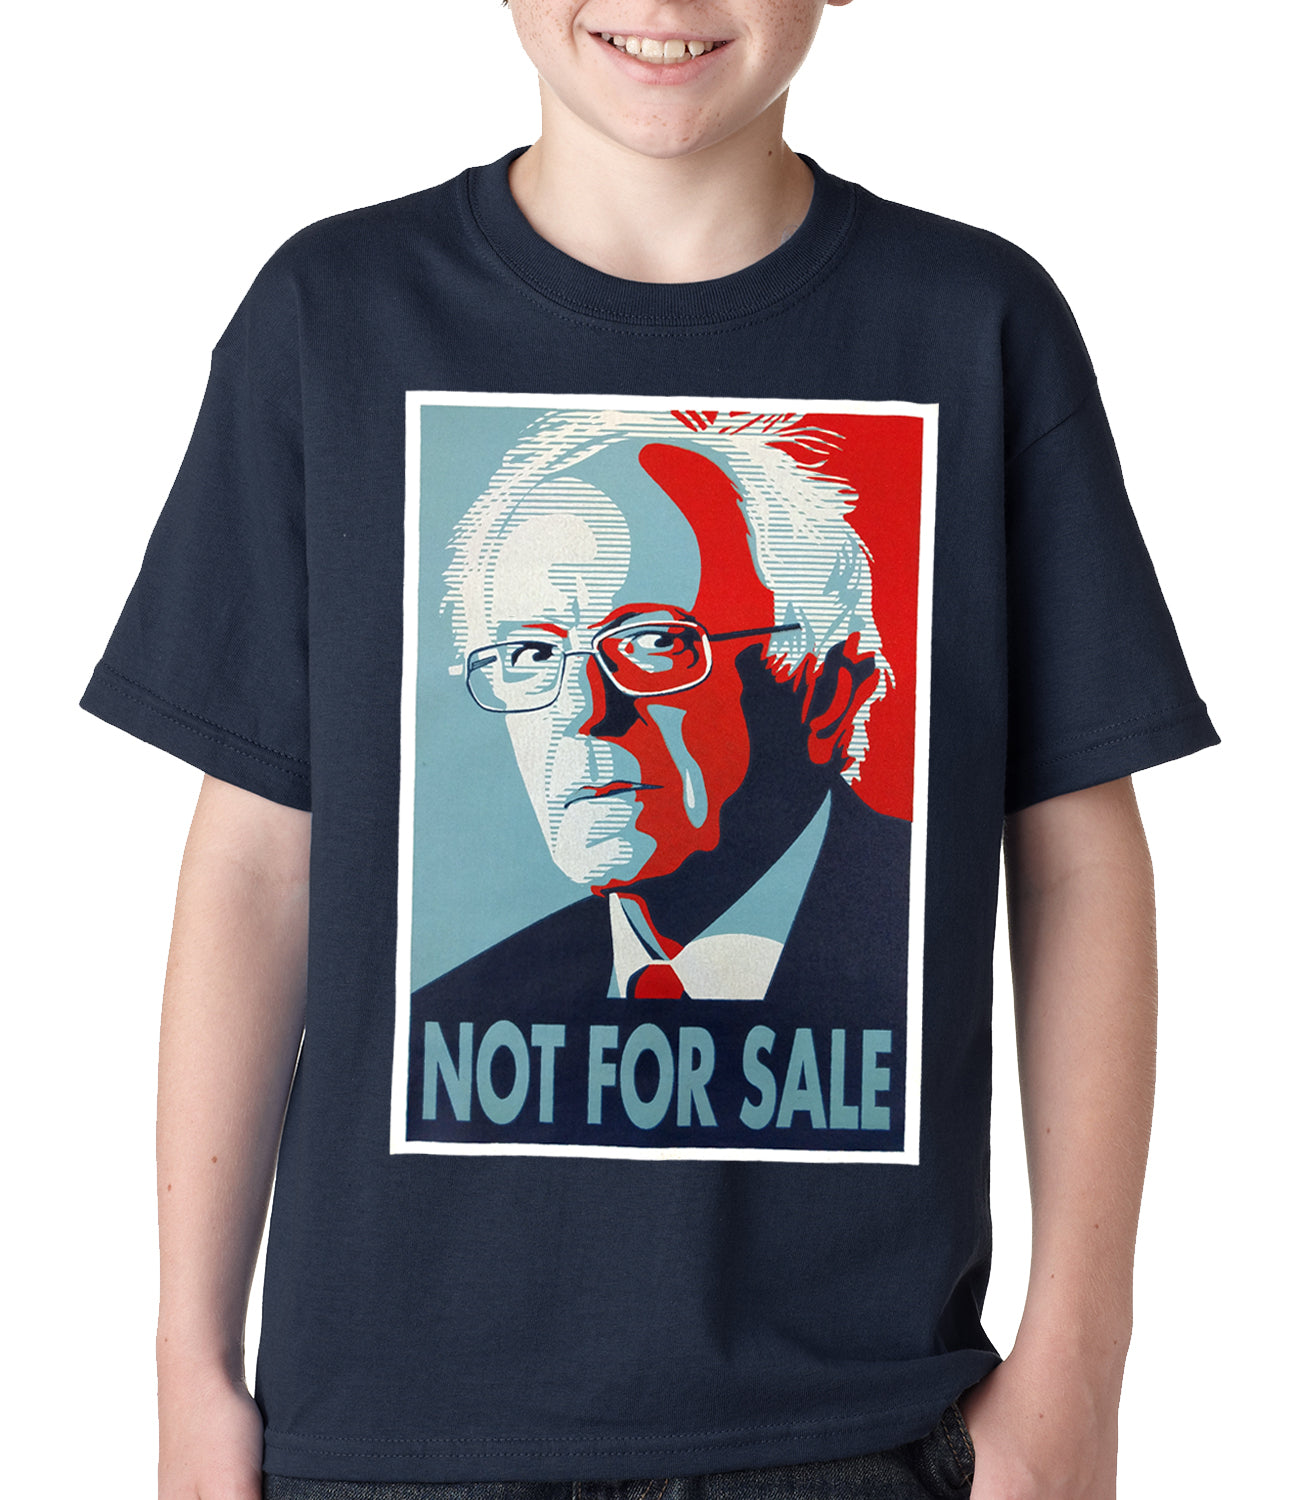 Bernie Sanders - Not For Sale - Election 2016 Kids T-shirt Black